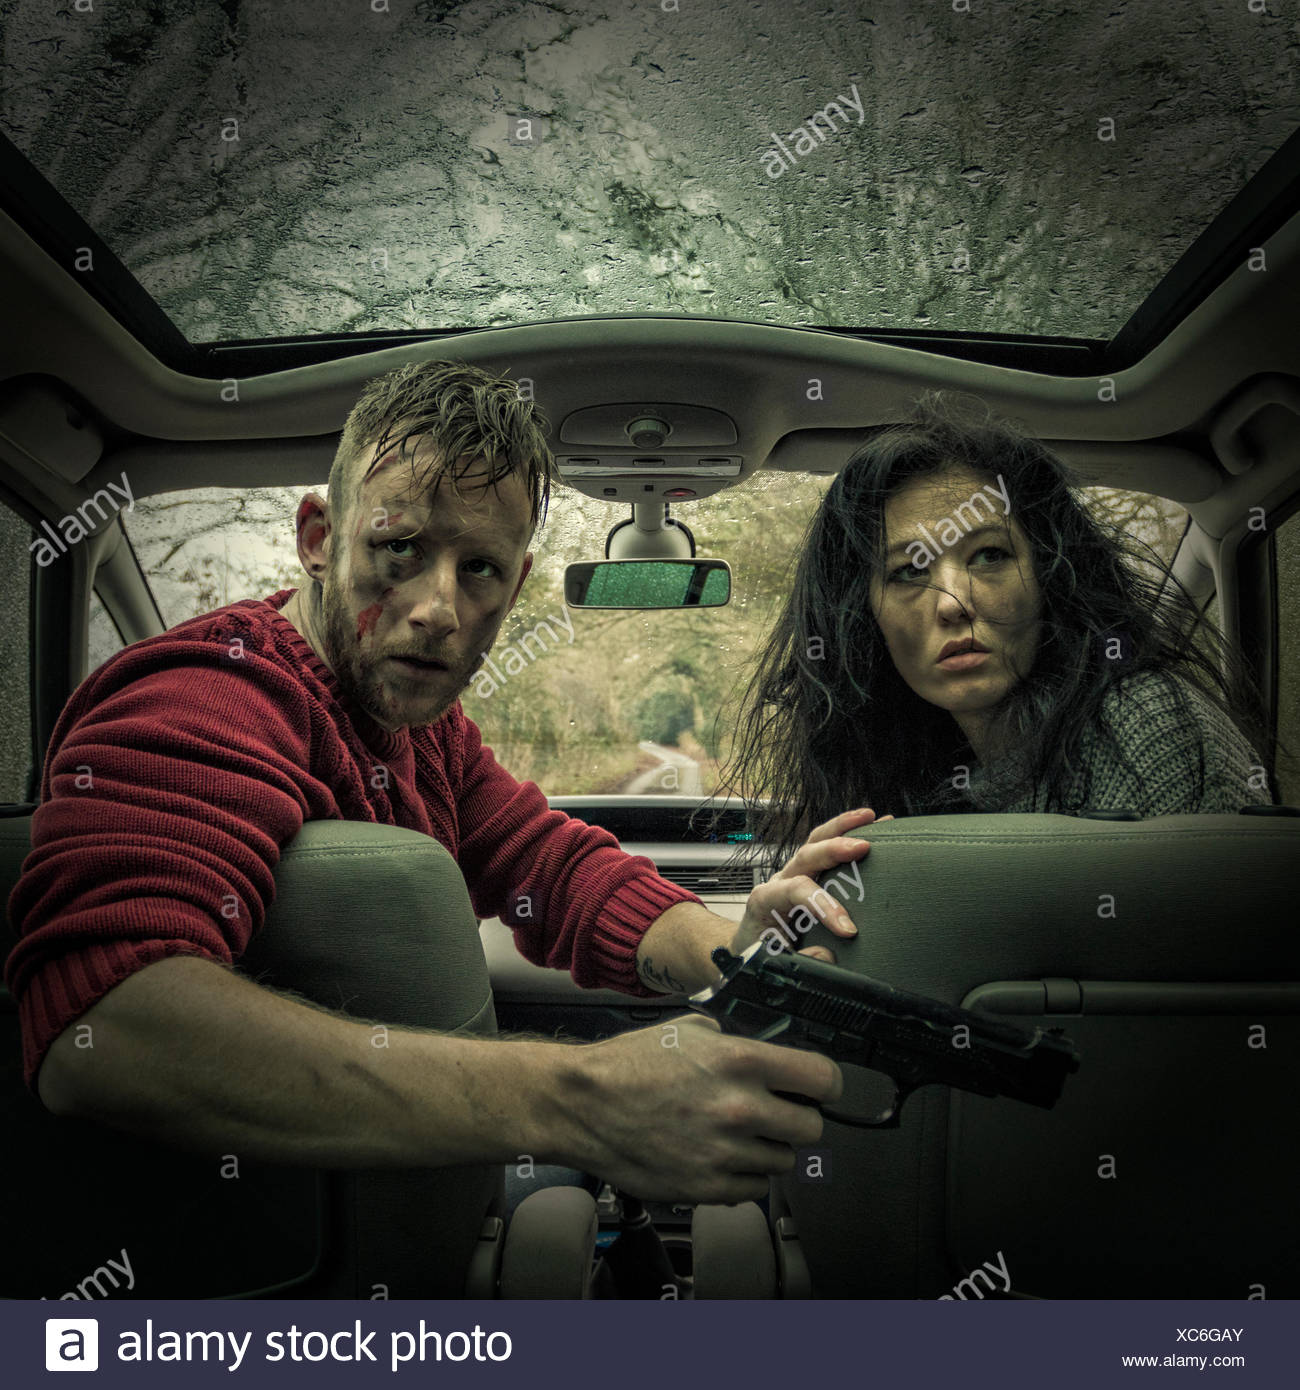 Man and woman in car with handgun Stock Photo